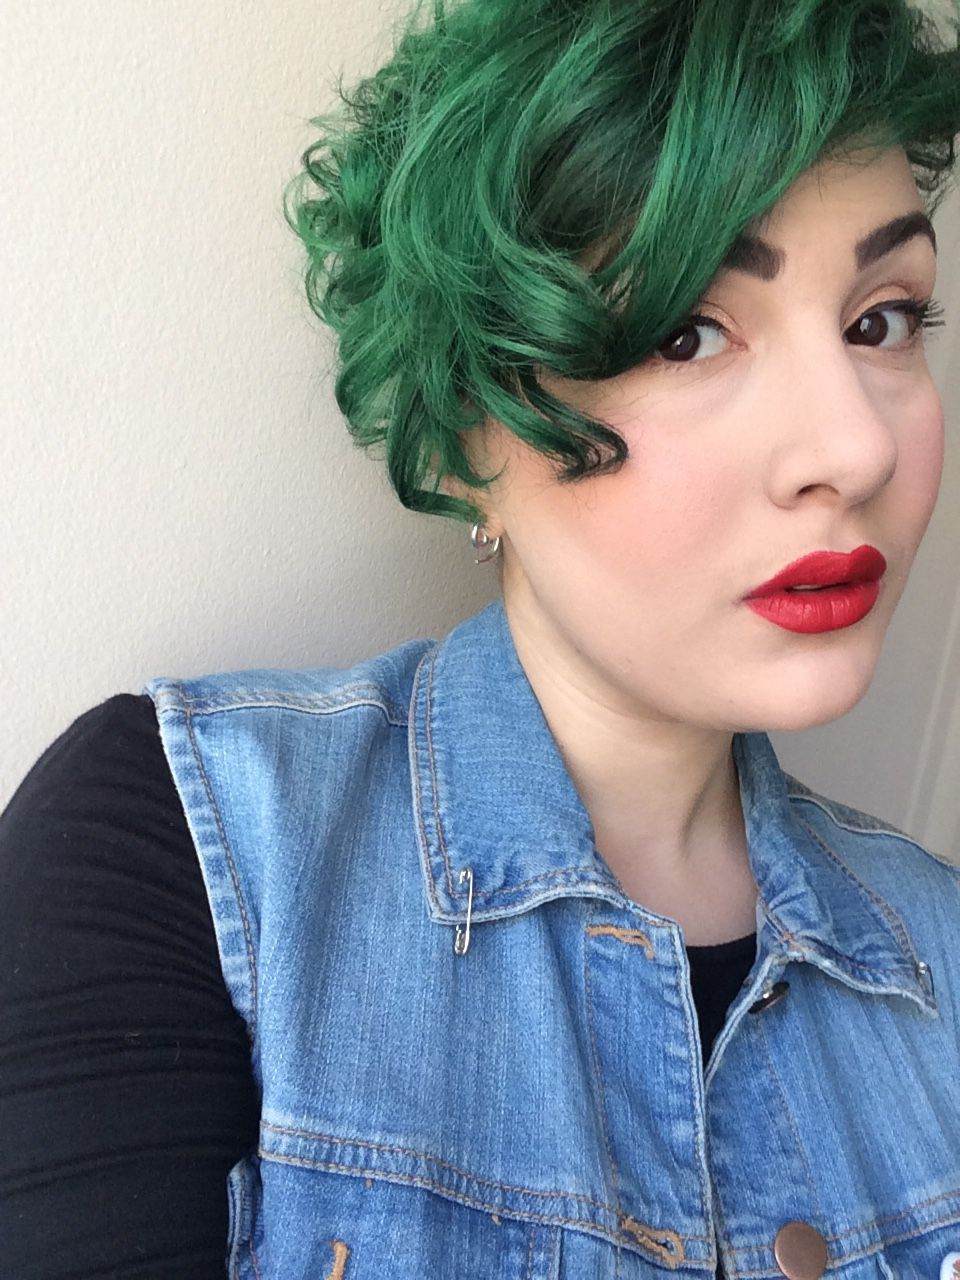 """missantiheroine: """"Totally not sorry for all the selfies today. I feel too damn gorgeous. """""""